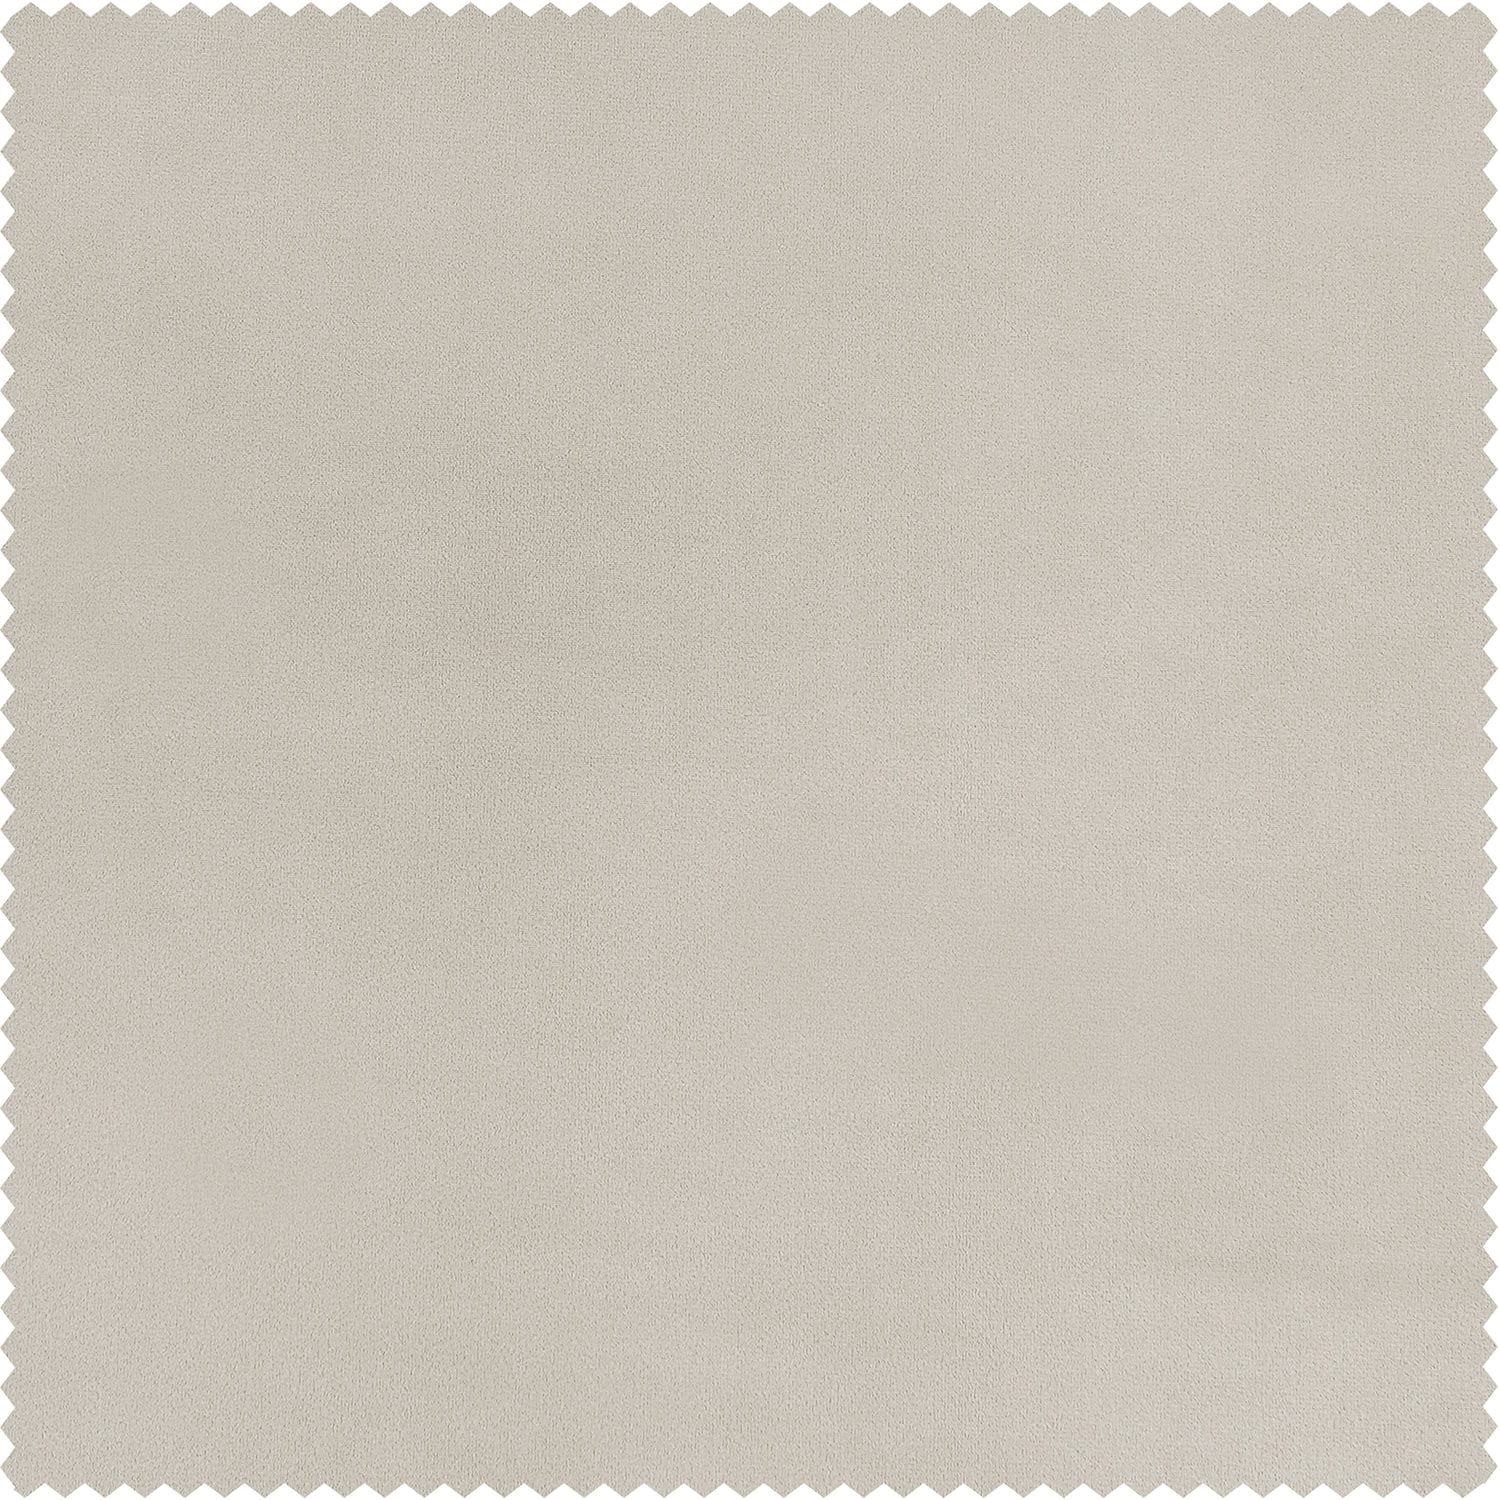 Light Beige Heritage Plush Velvet Fabric